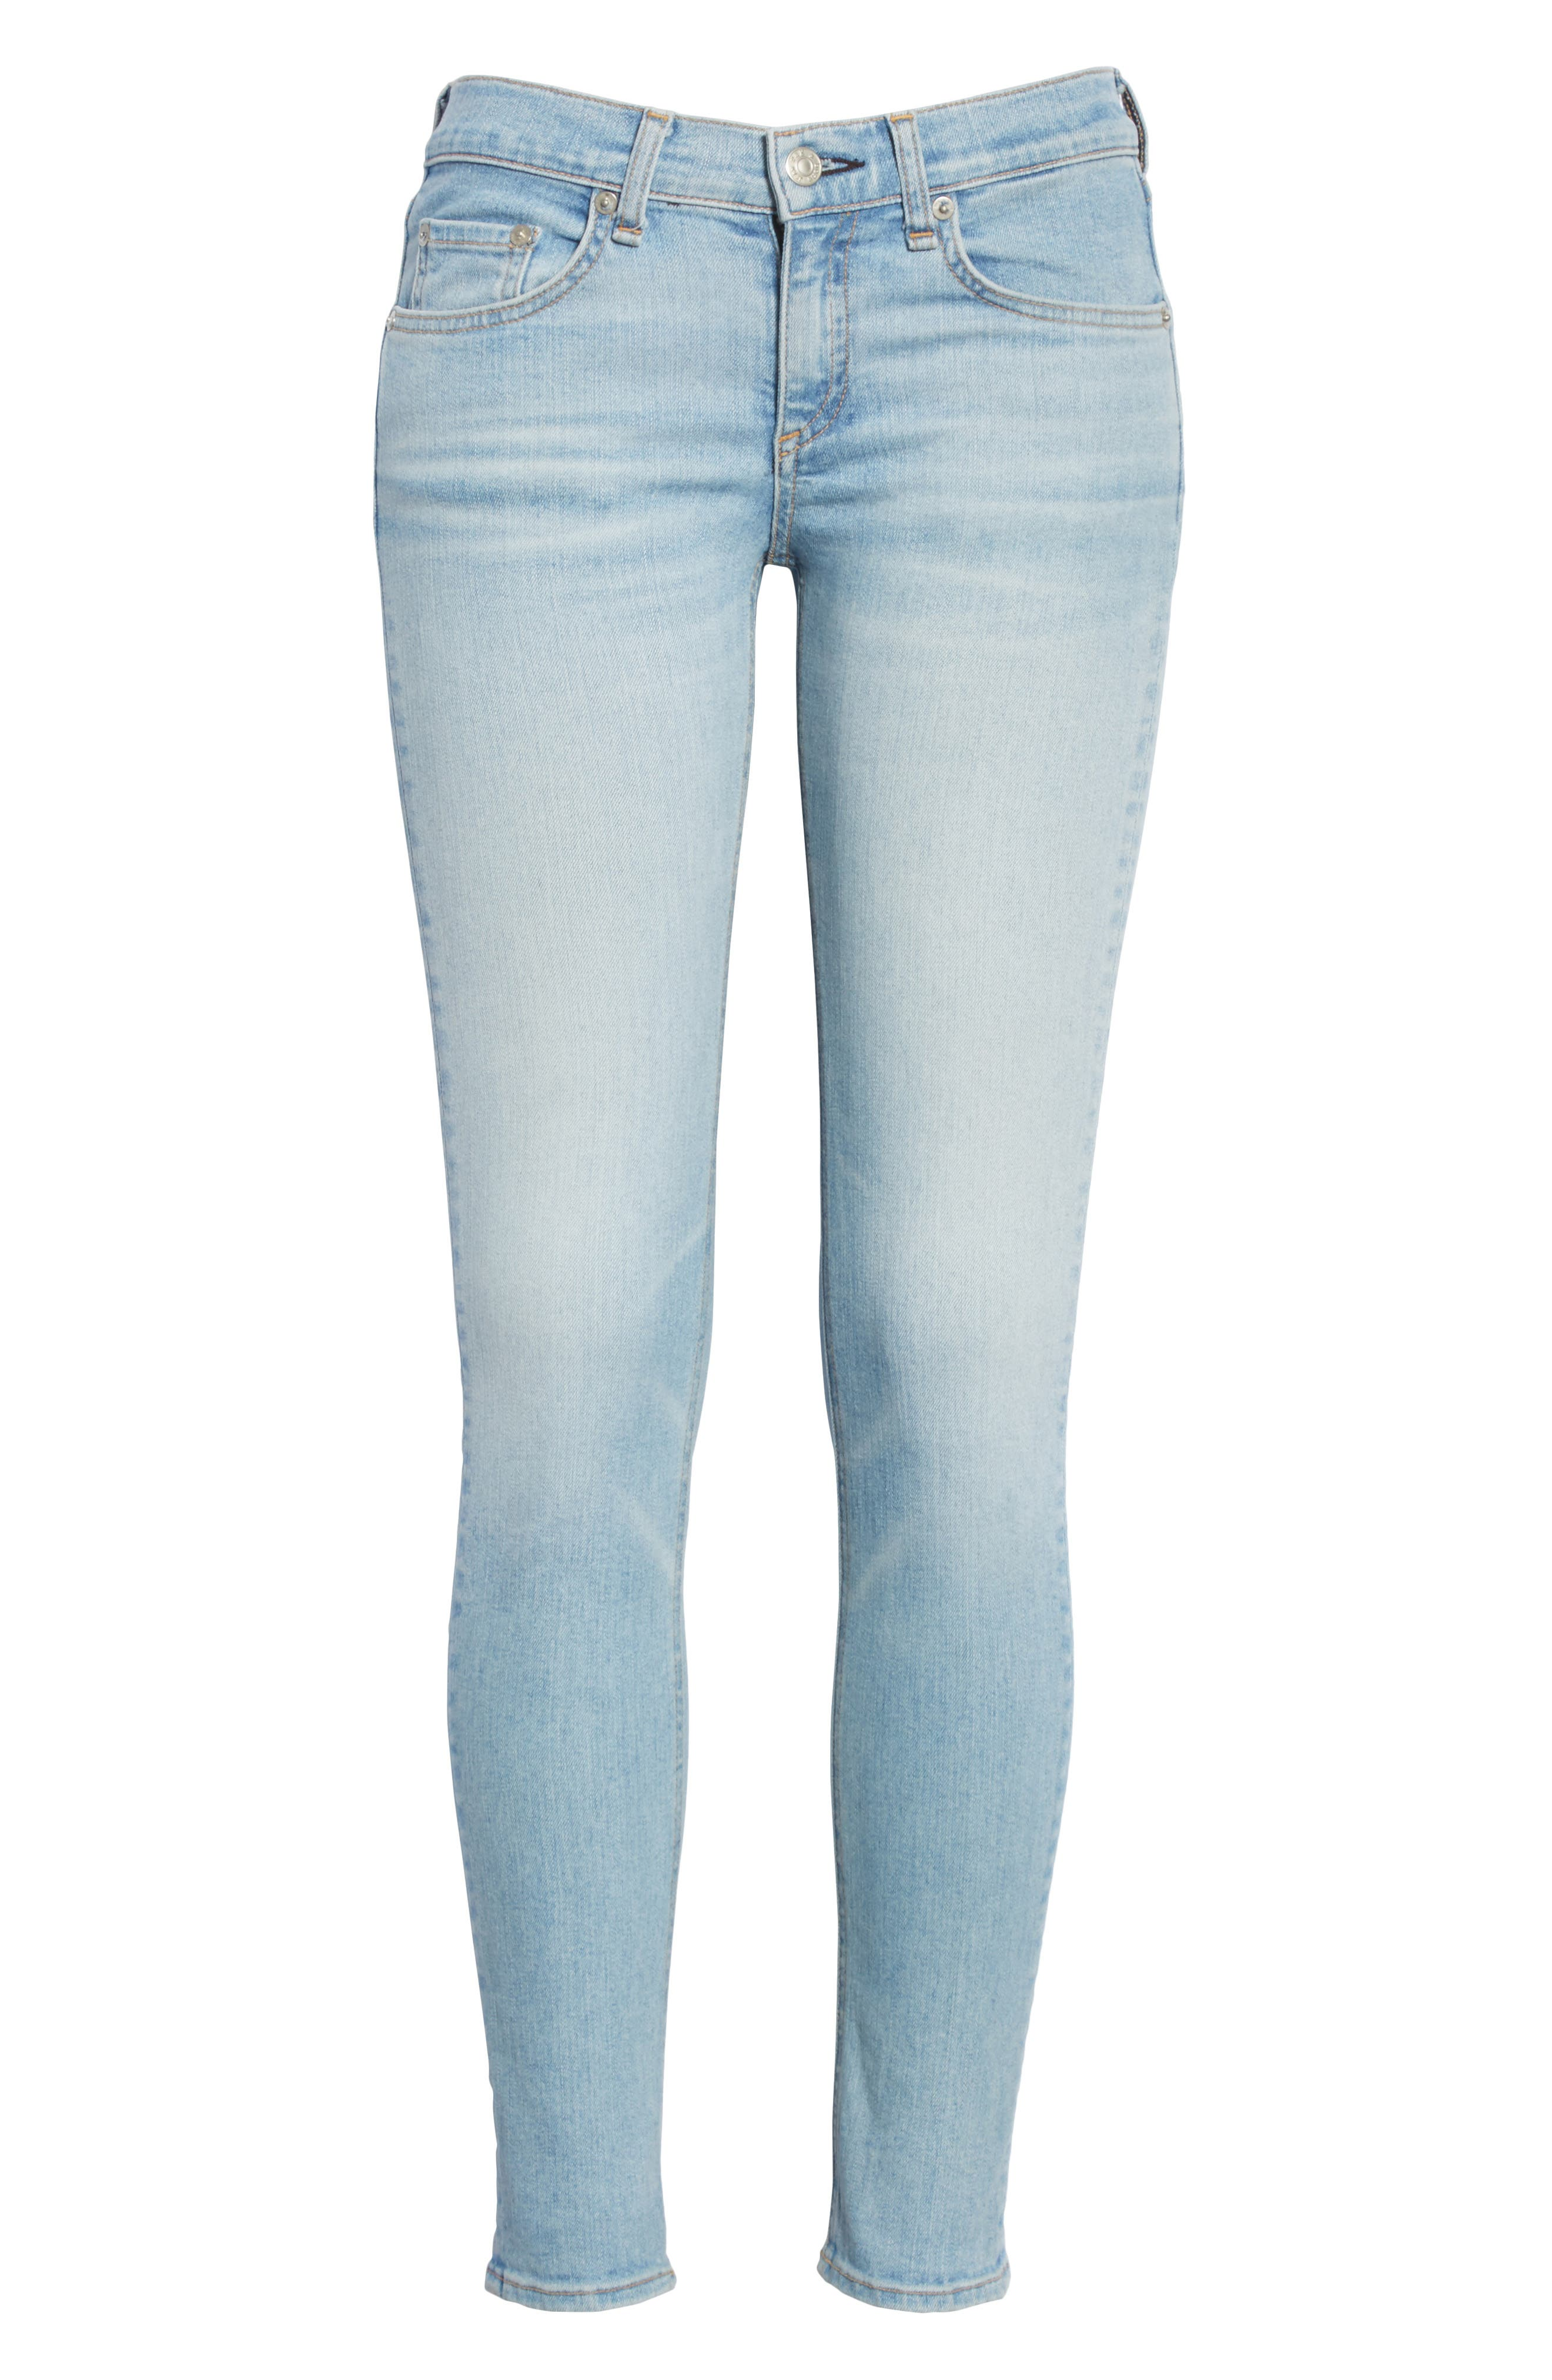 Ankle Skinny Jeans,                             Alternate thumbnail 6, color,                             450